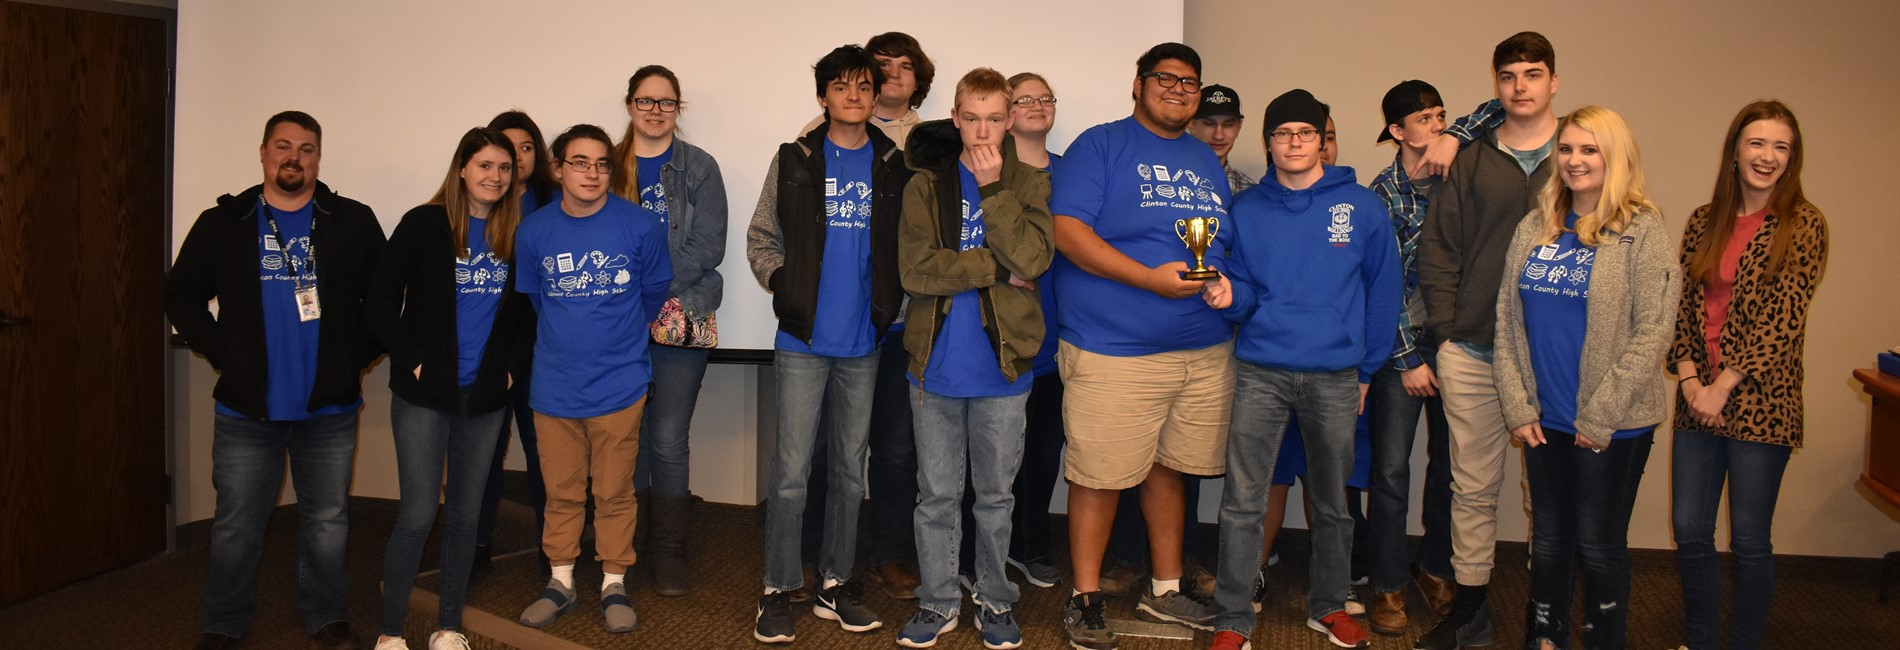 Congratulations to the CCHS Quiz Bowl Team on their 2nd place finish at the annual Quiz Bowl competition at WKU!